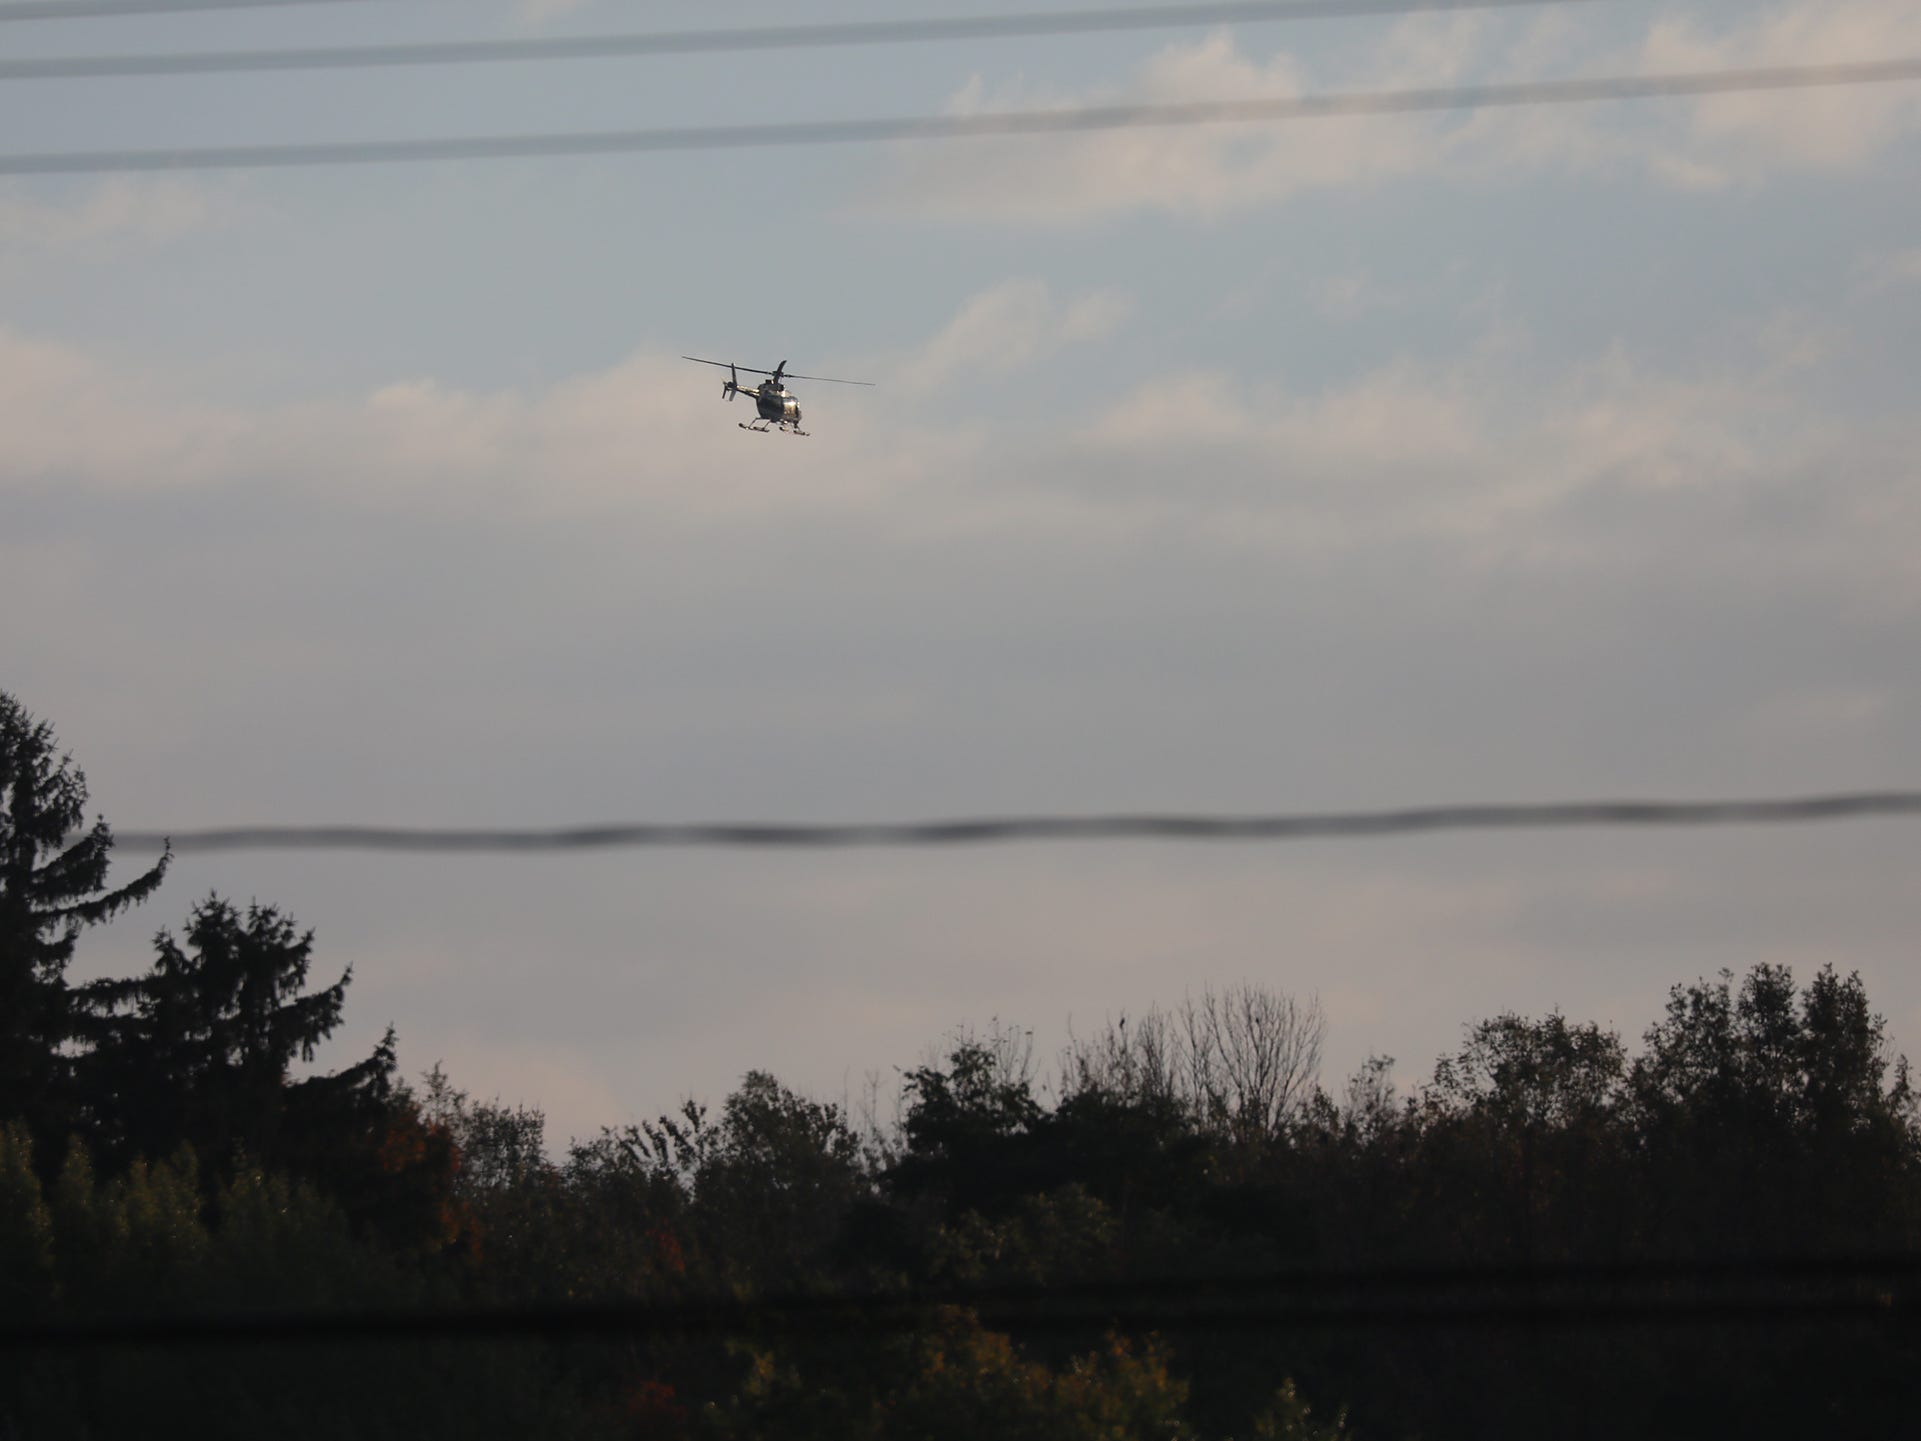 A New York State Police helicopter searches the area near the shooting for the suspect Tuesday, Oct. 23, 2018.